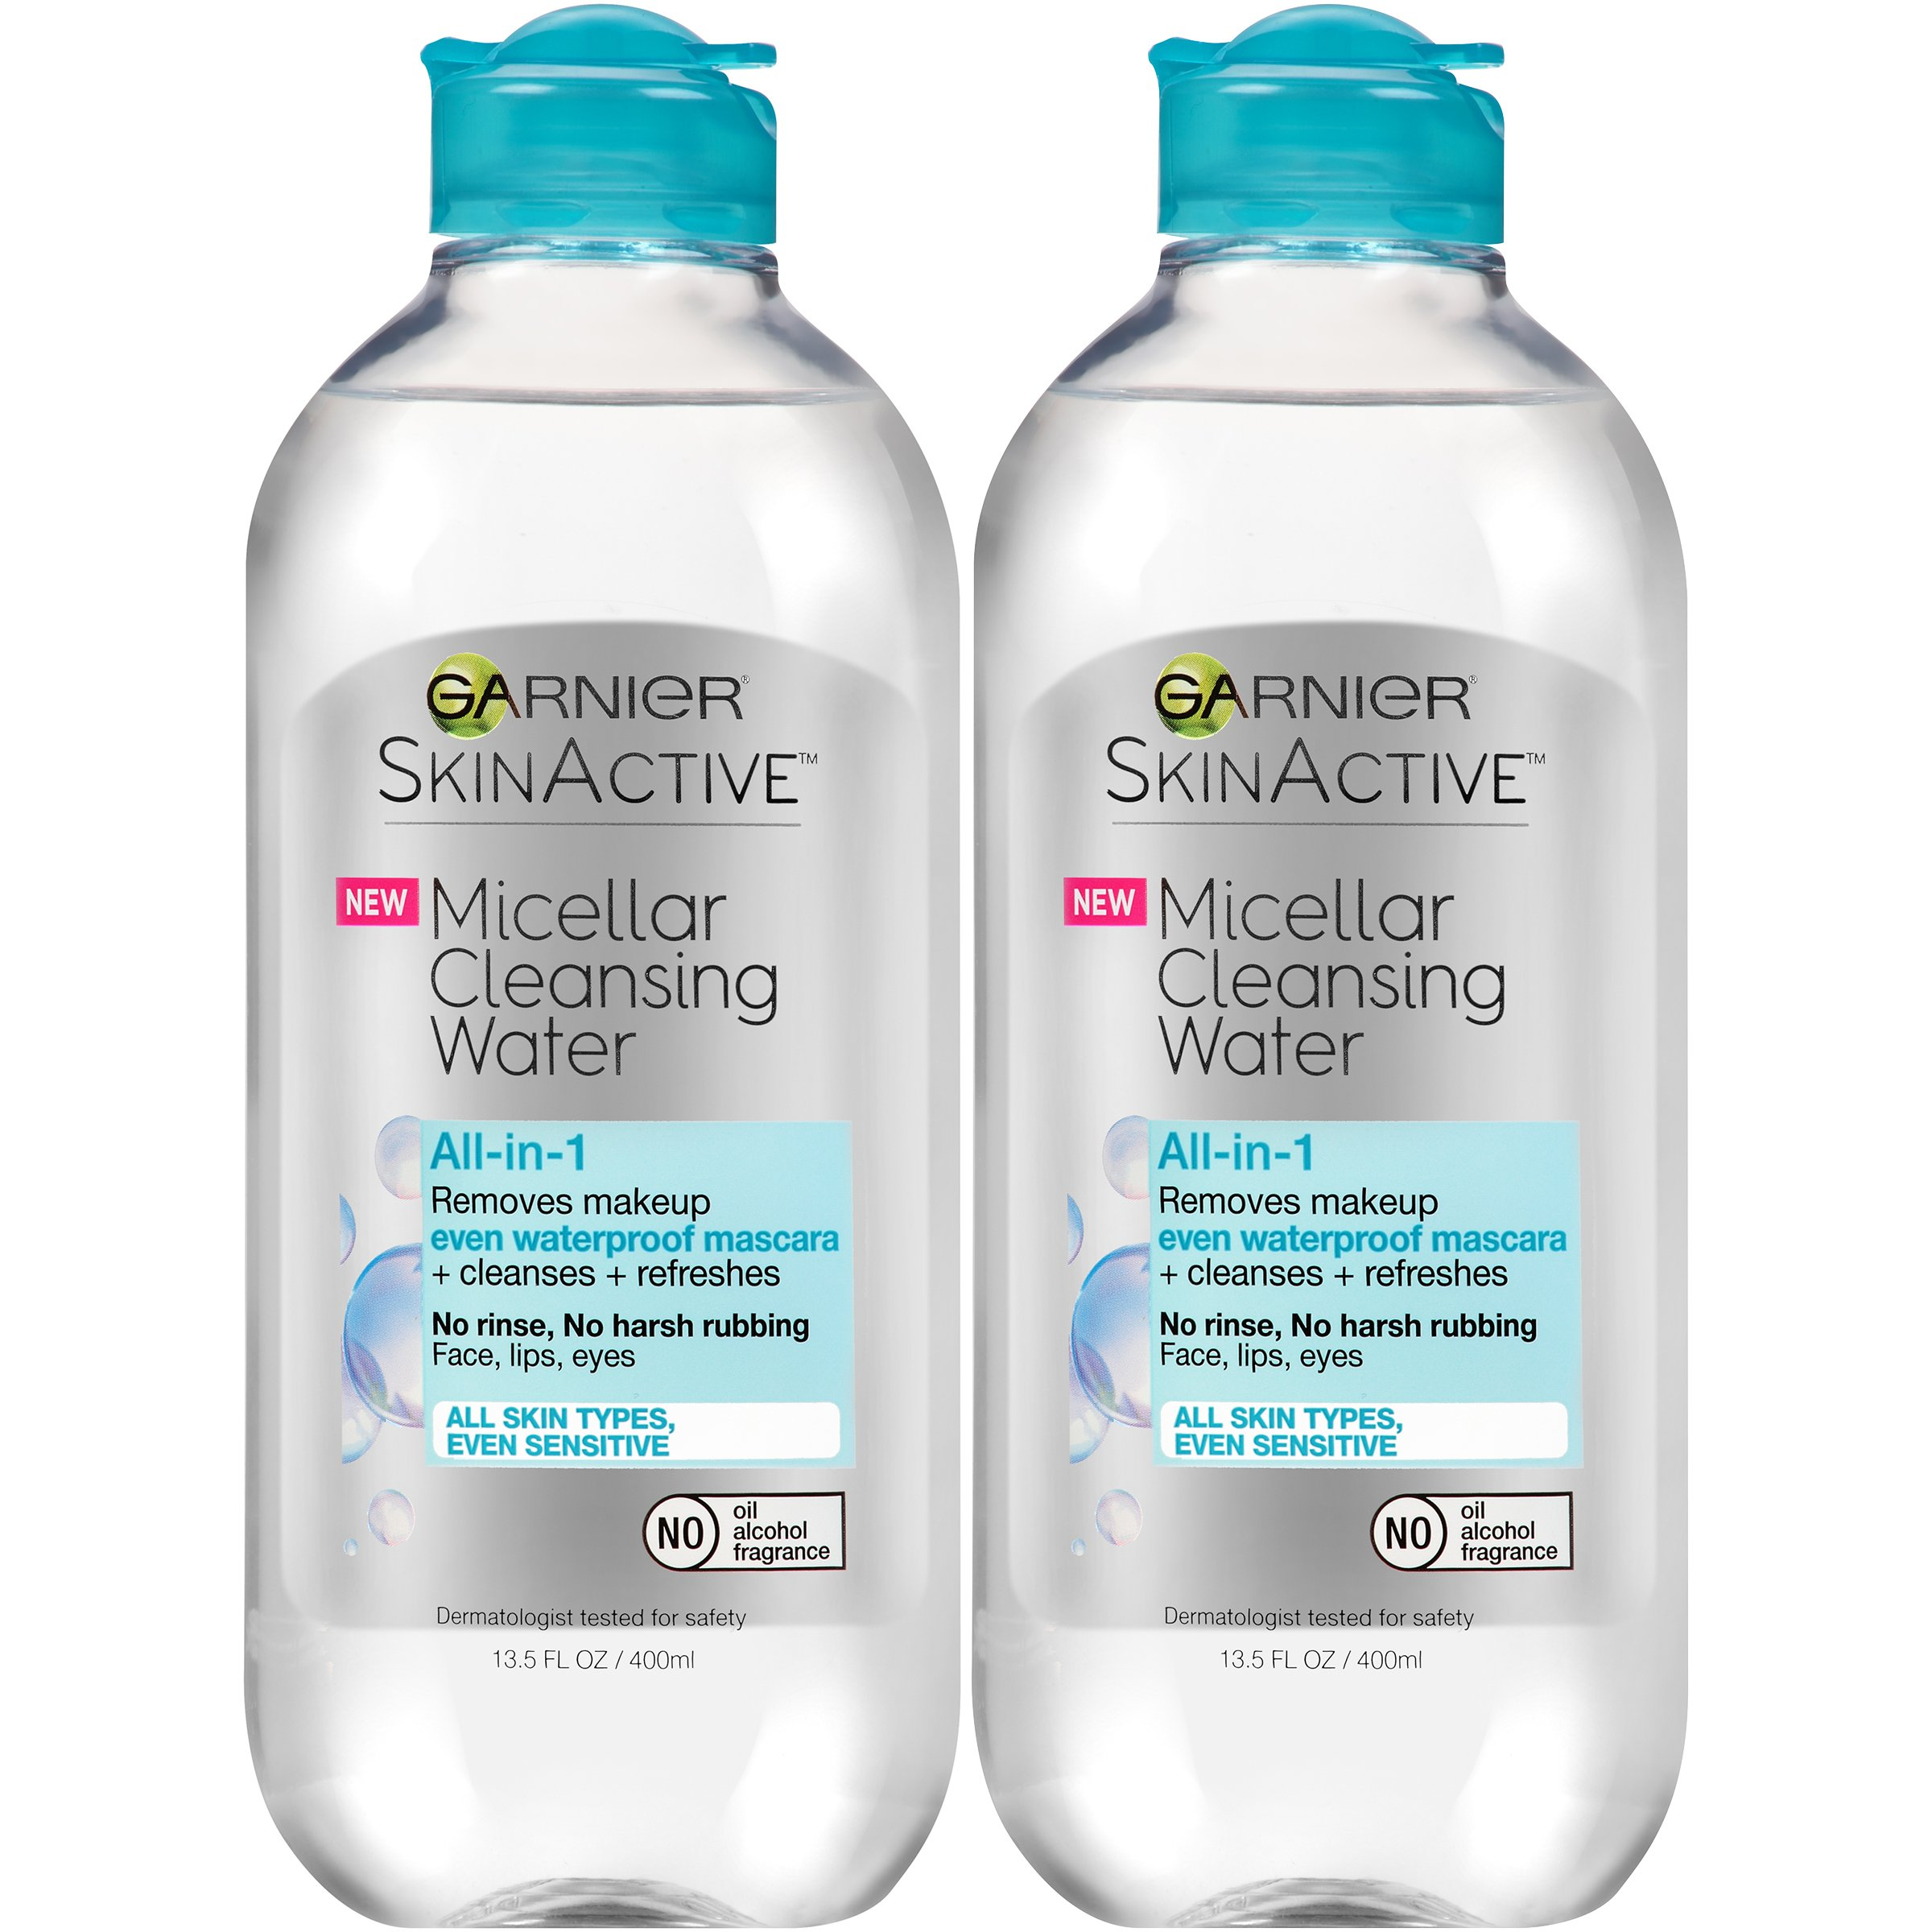 Garnier SkinActive Micellar Cleansing Water, All-in-1 Waterproof Makeup Remover and Facial Cleanser, 13.5 fl oz, 2 Pack by Garnier